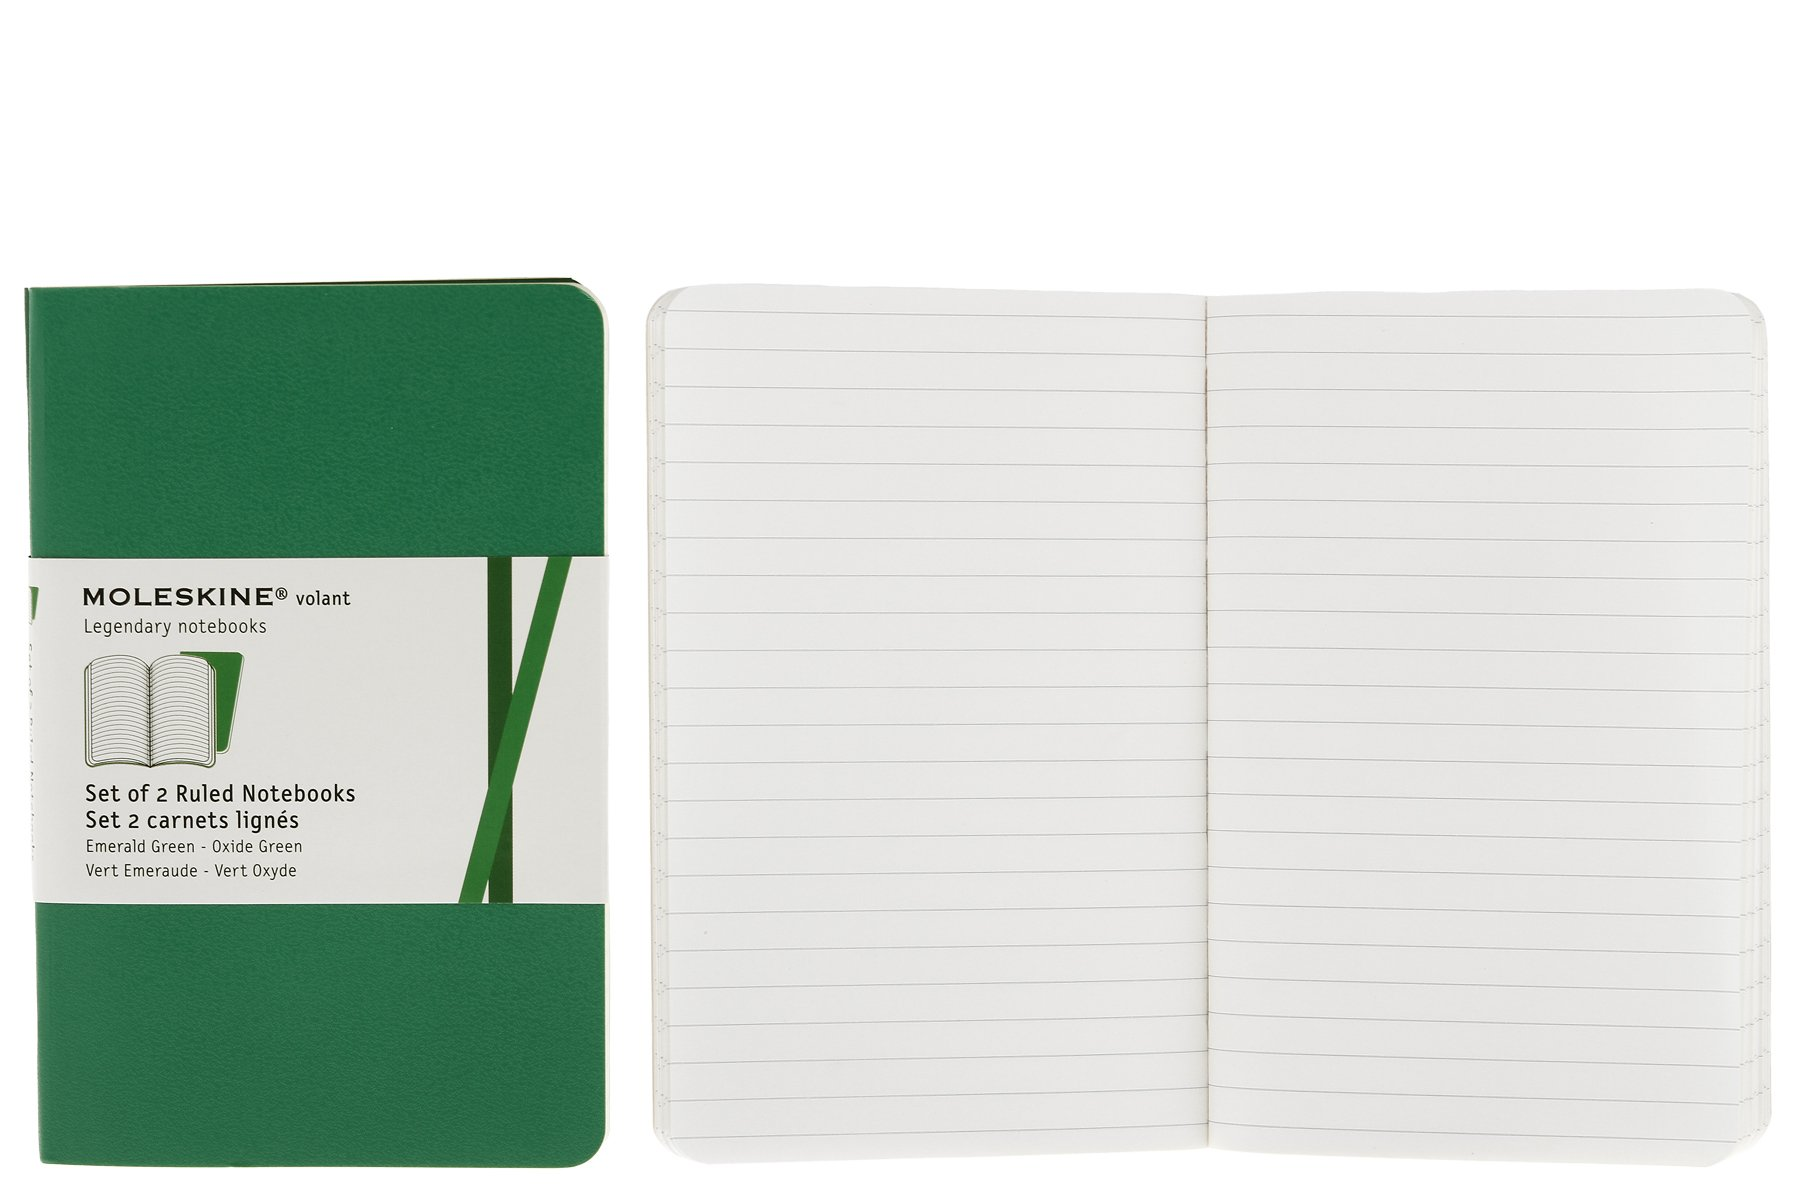 Moleskine Volant Notebook (Set of 2), Pocket, Ruled, Emerald Green, Oxide Green, Soft Cover (3.5 x 5.5)